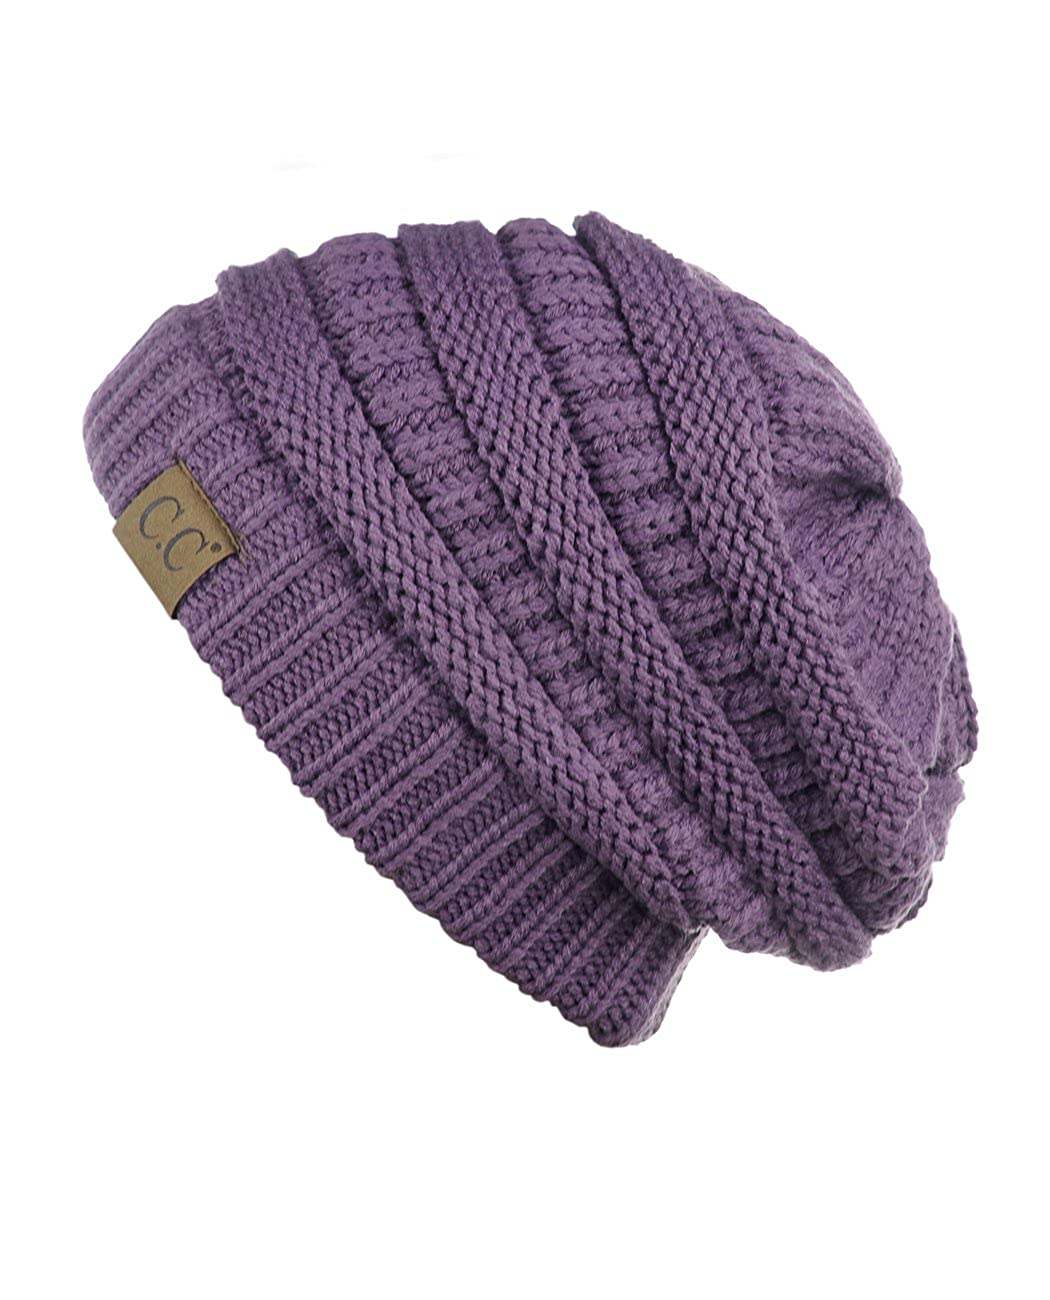 Trendy Warm Chunky Soft Stretch Cable Knit Beanie Skully, Violet C.C FBA CA HAT20A- Violet